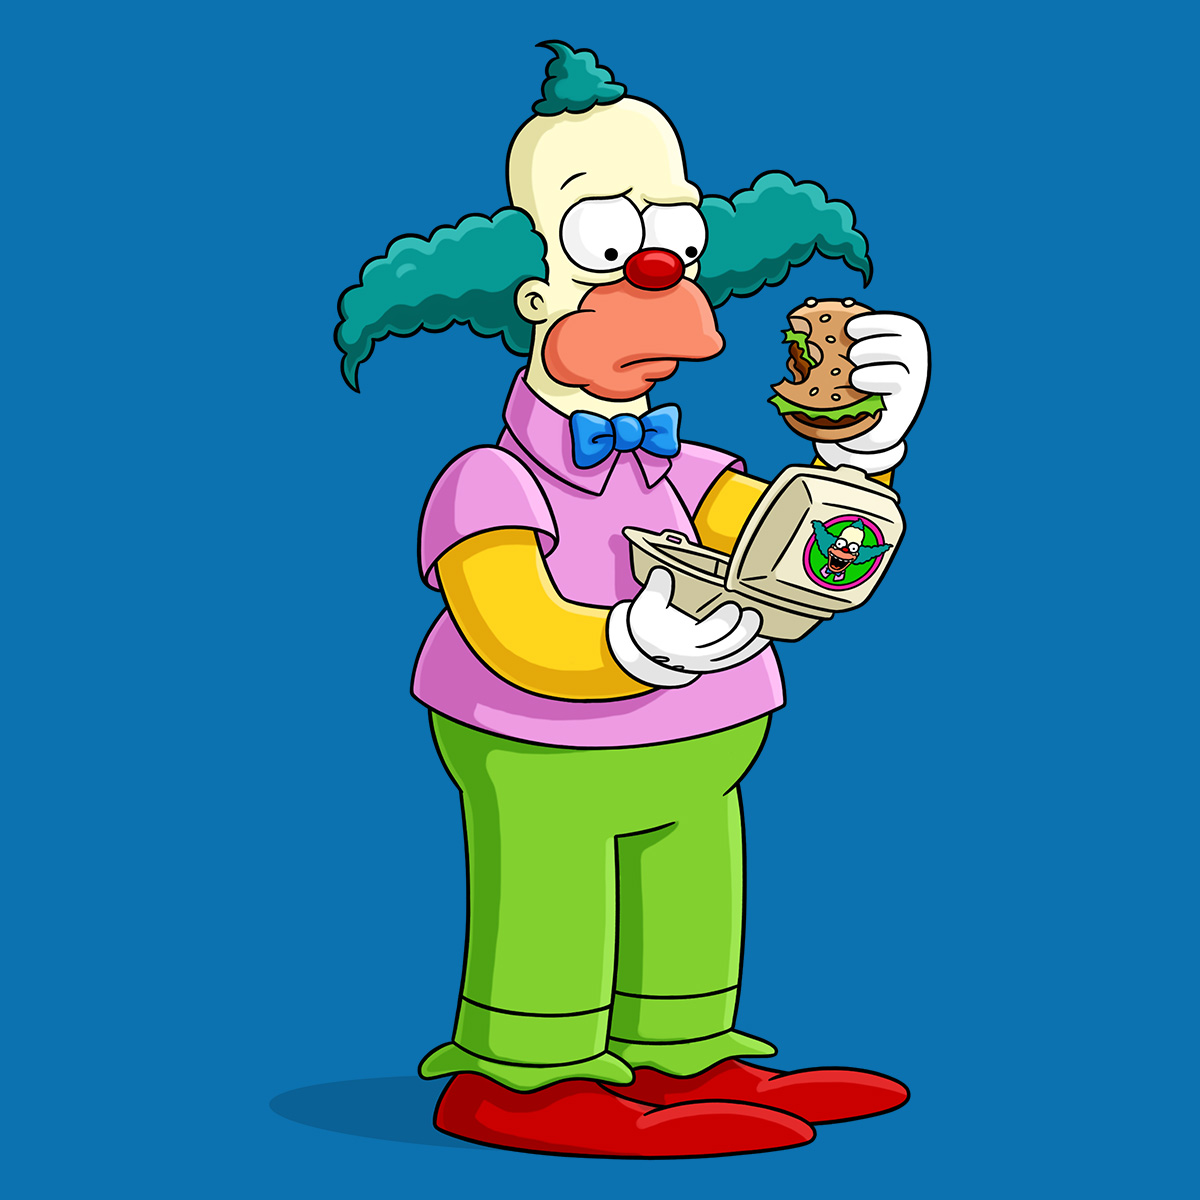 Krusty Der Clown